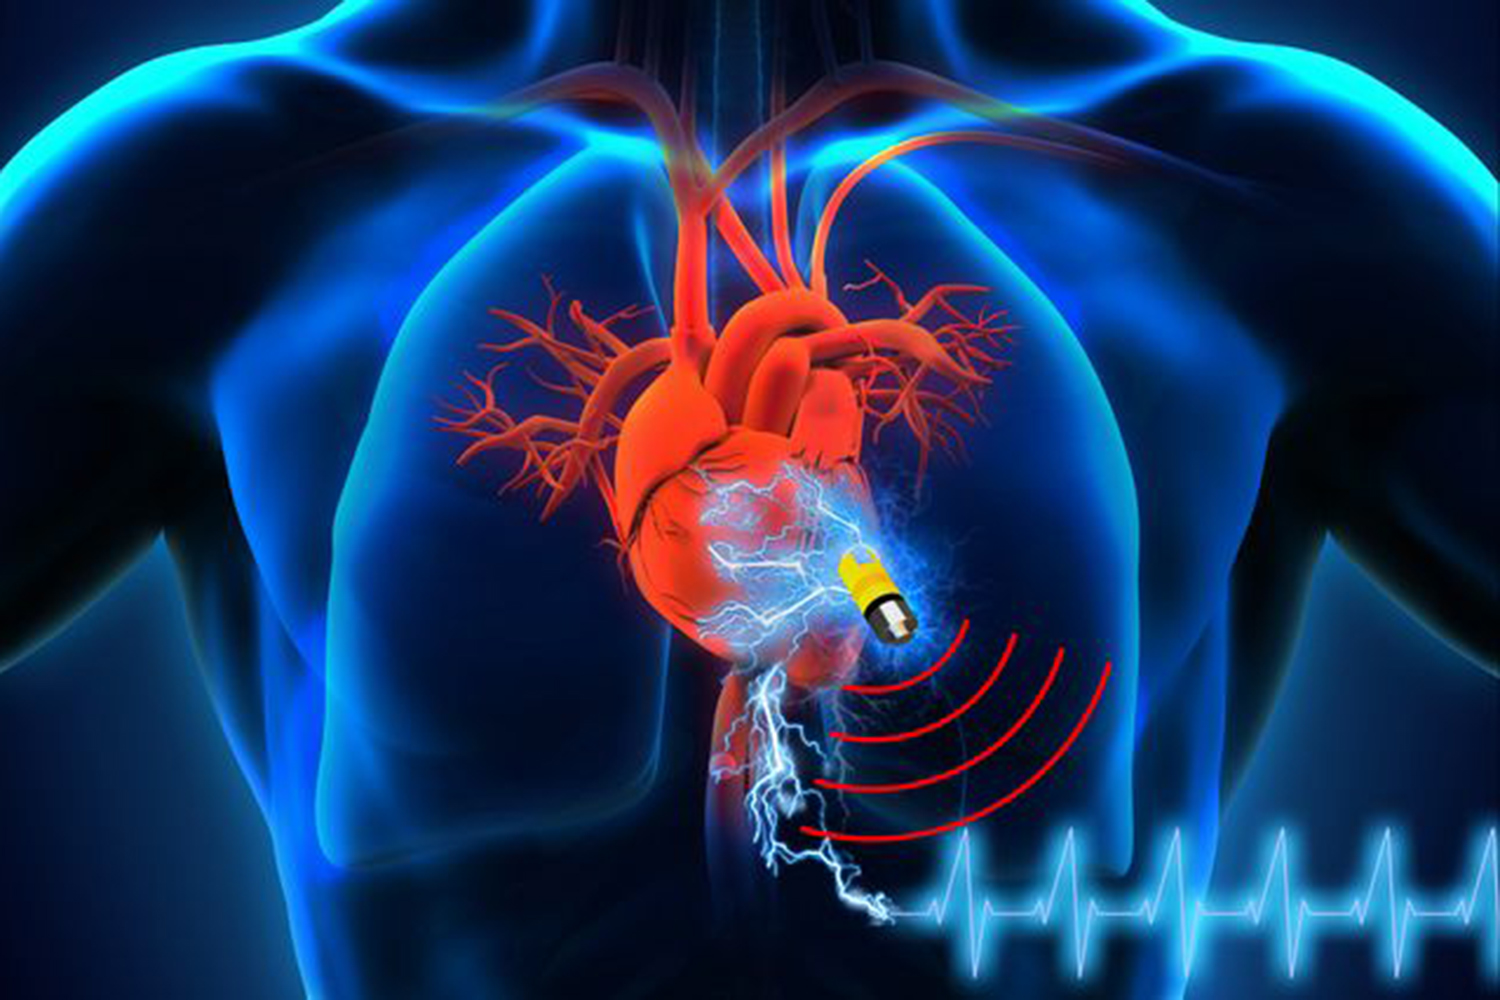 New design shows body's fluids could power pacemakers ...